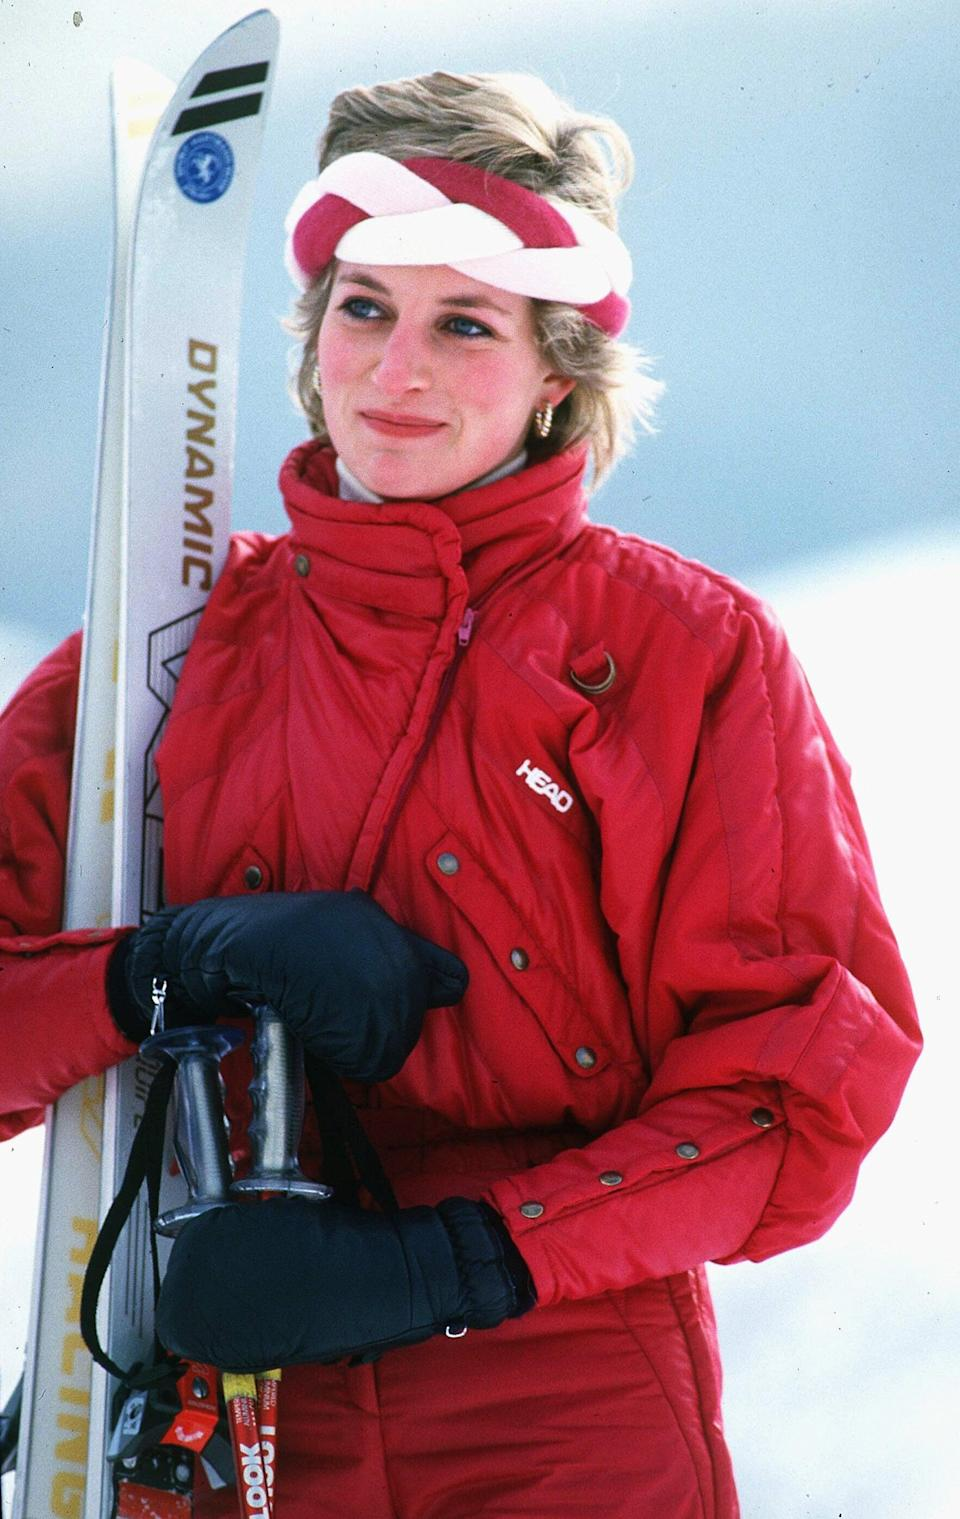 <p>Check out the cool Winter headband on Diana while skiing. </p>